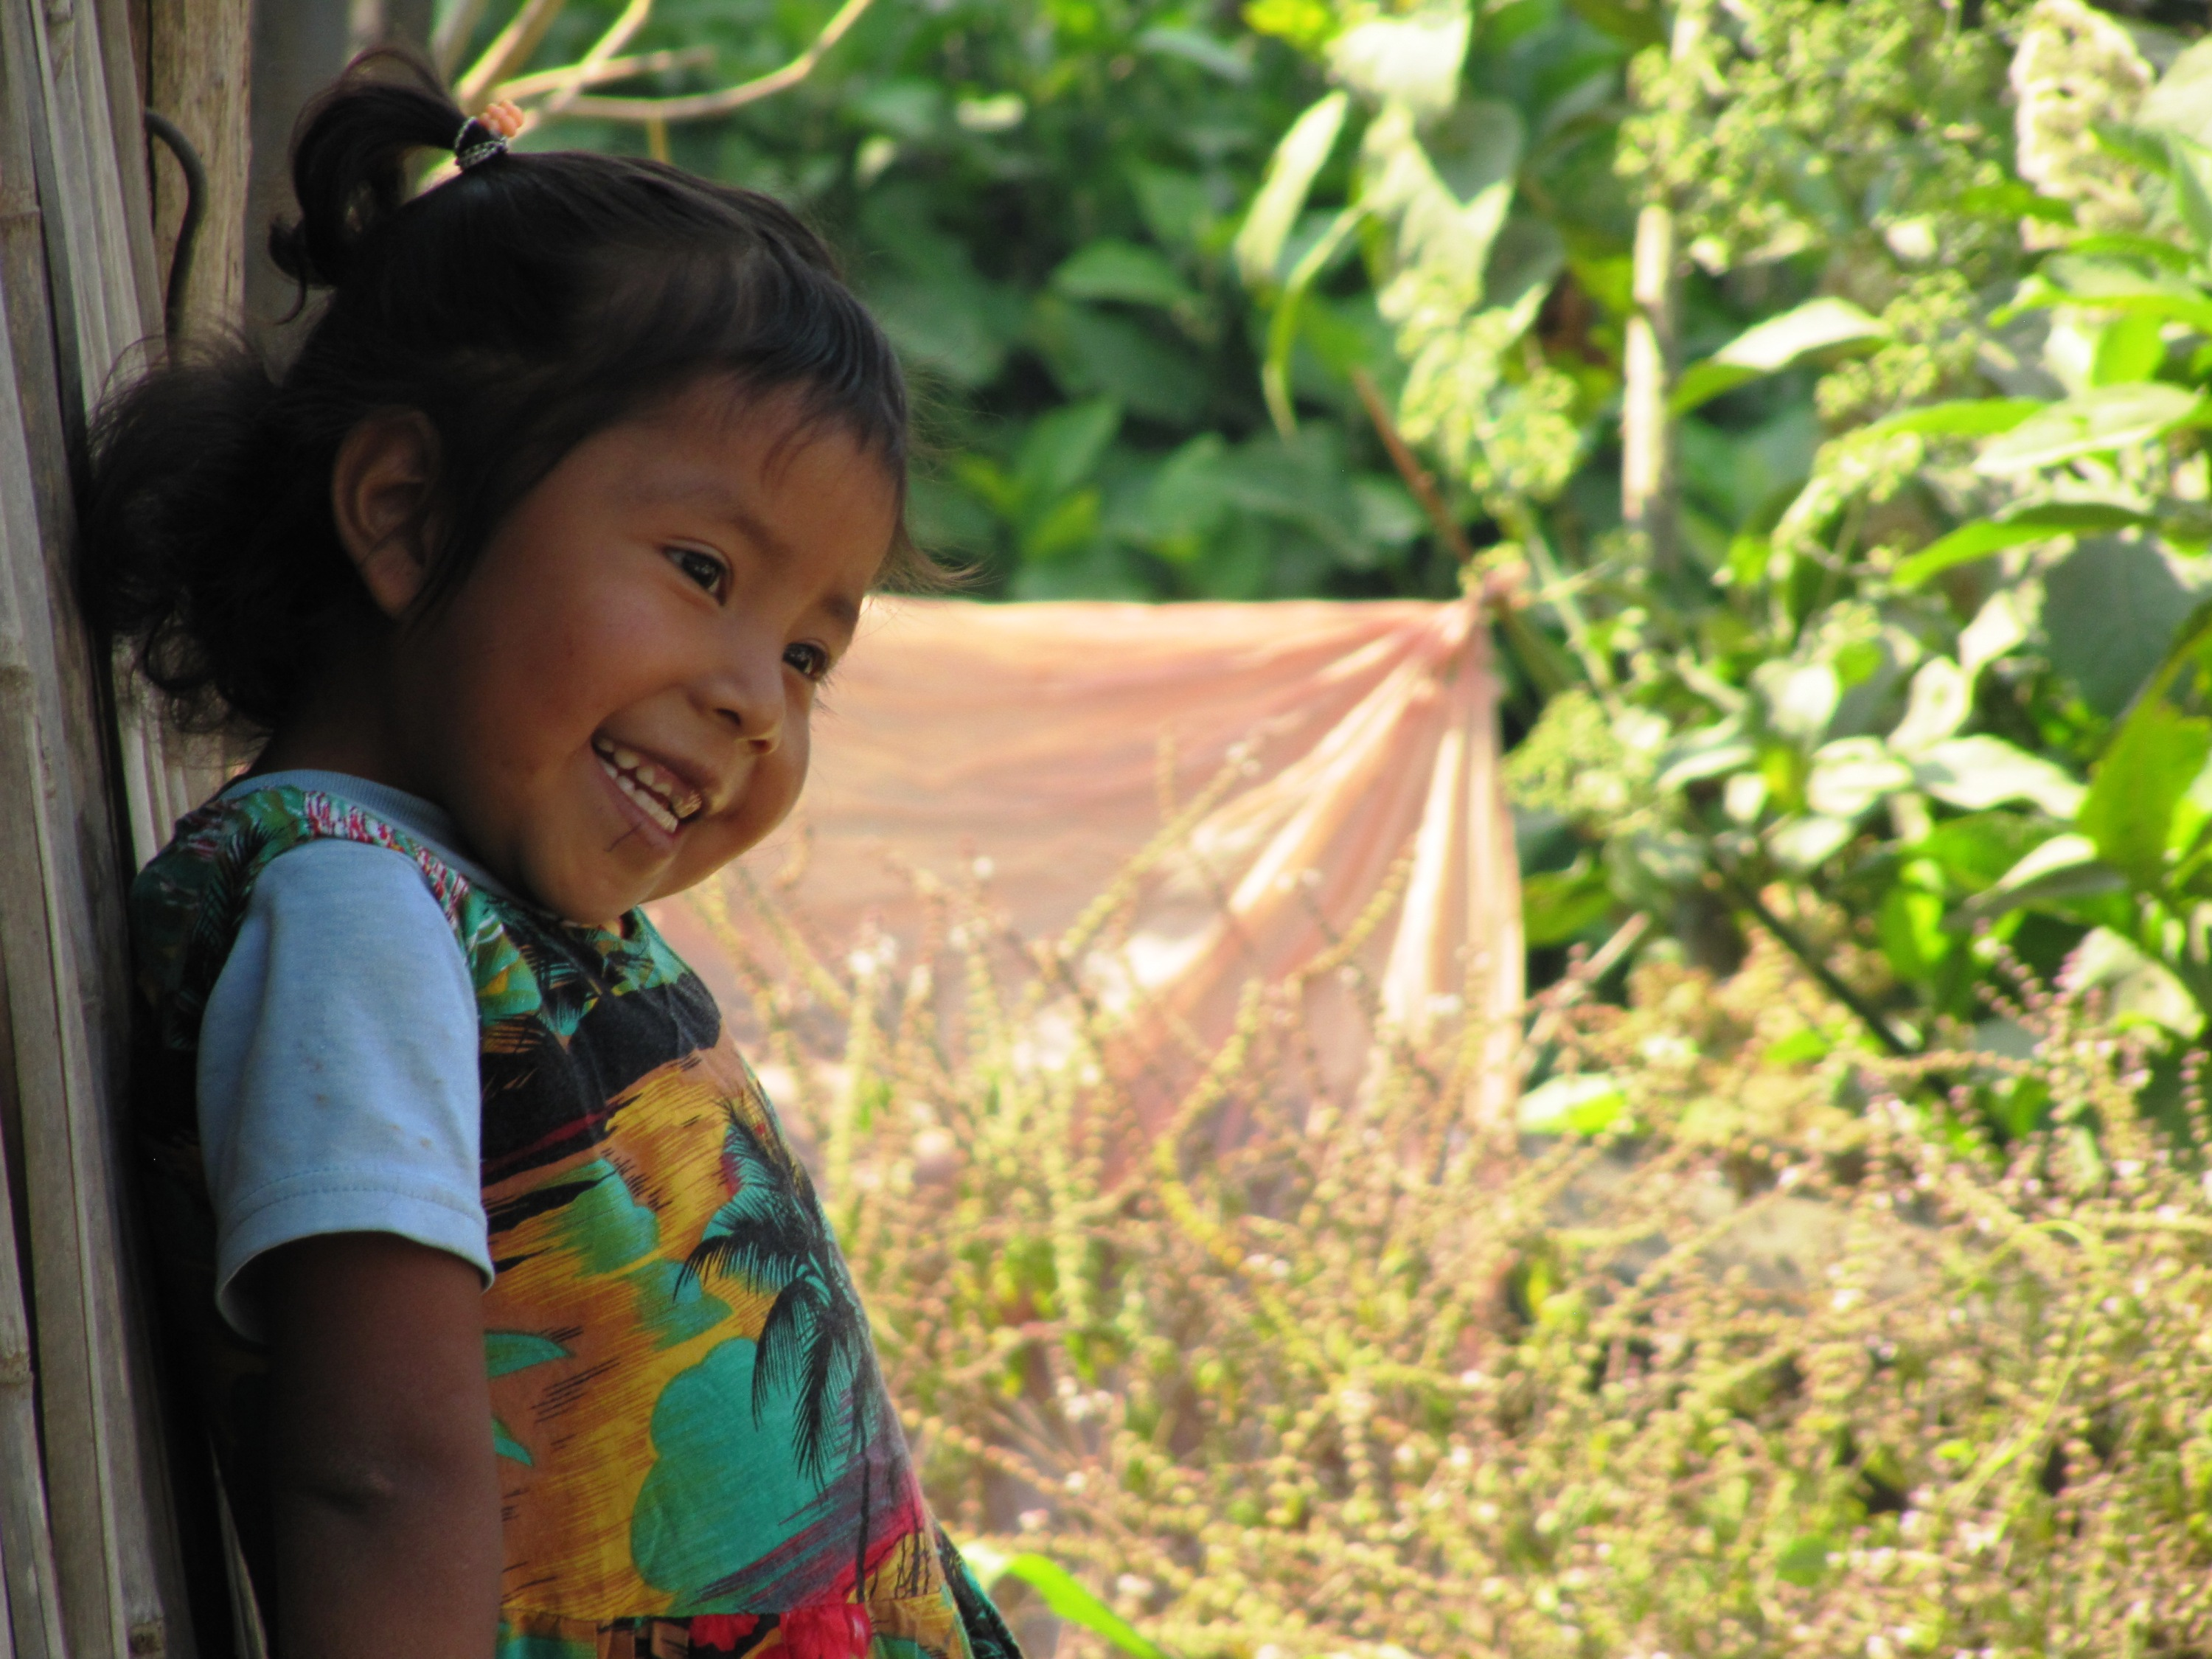 Giving girls a second chance. Guatemala is one of the most ethnically diverse countries in Latin America, and also one of the poorest places in the Western Hemisphere. hot girl